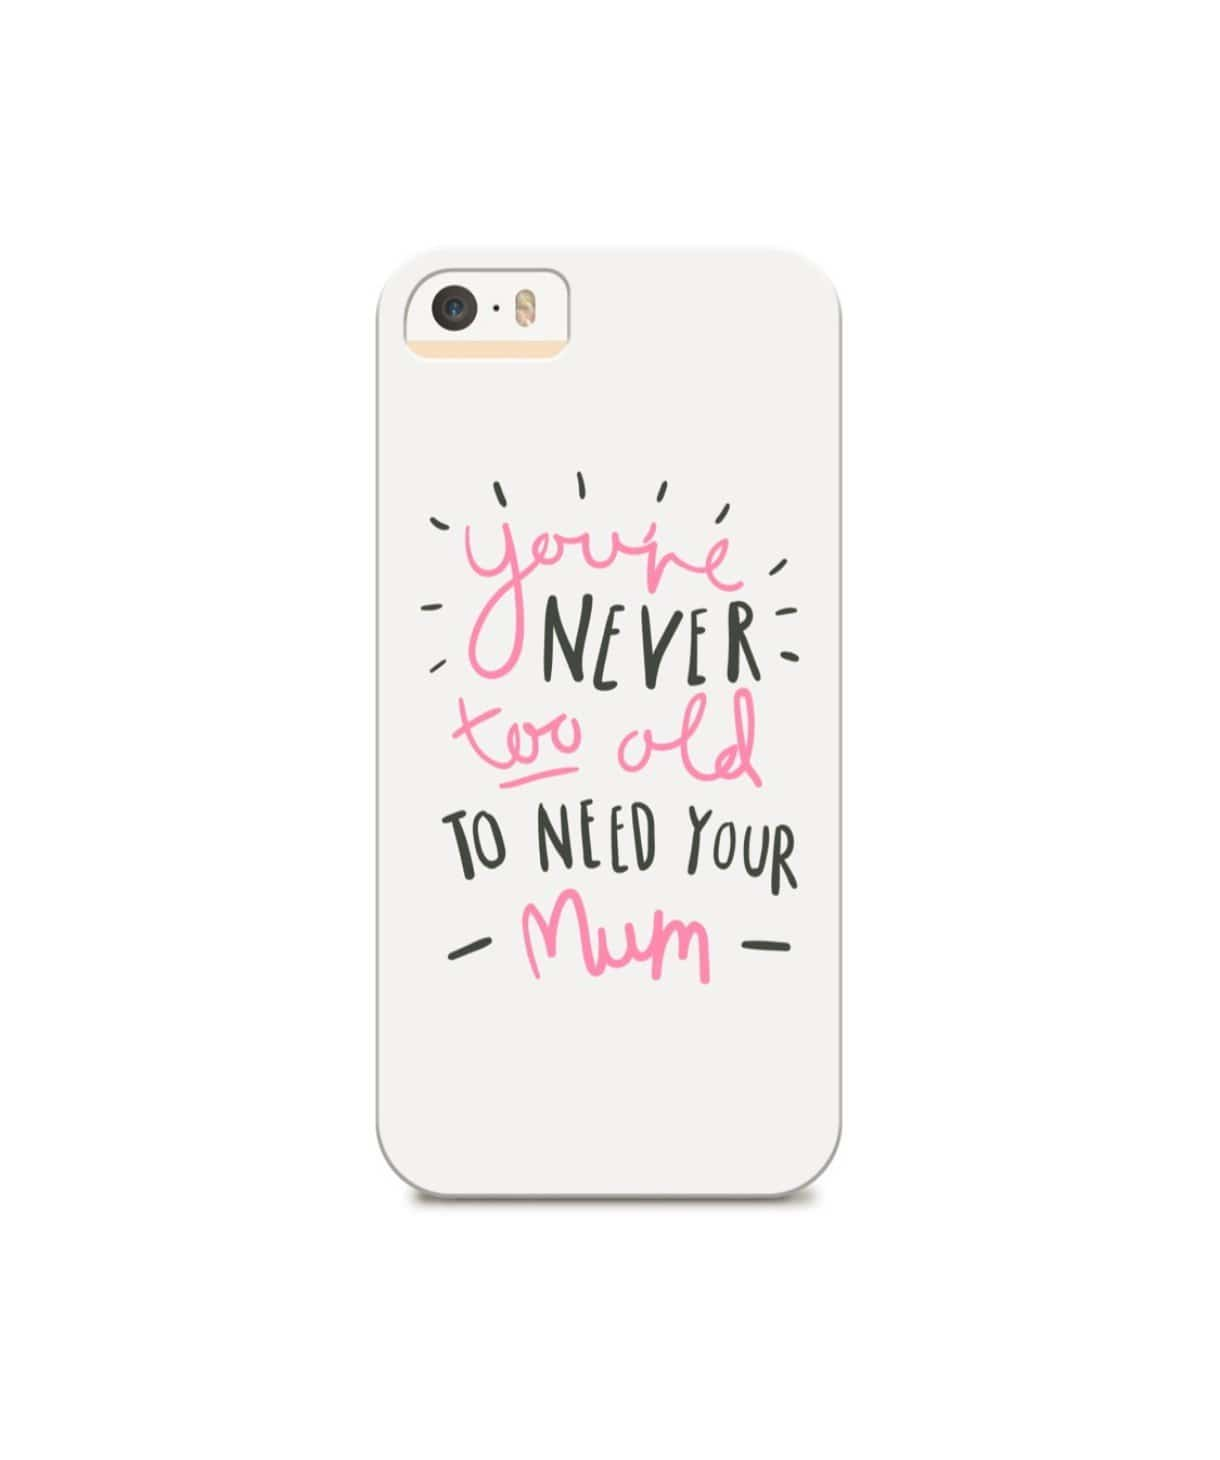 Never Too Old For Mum IPhone Cover - Uptownie